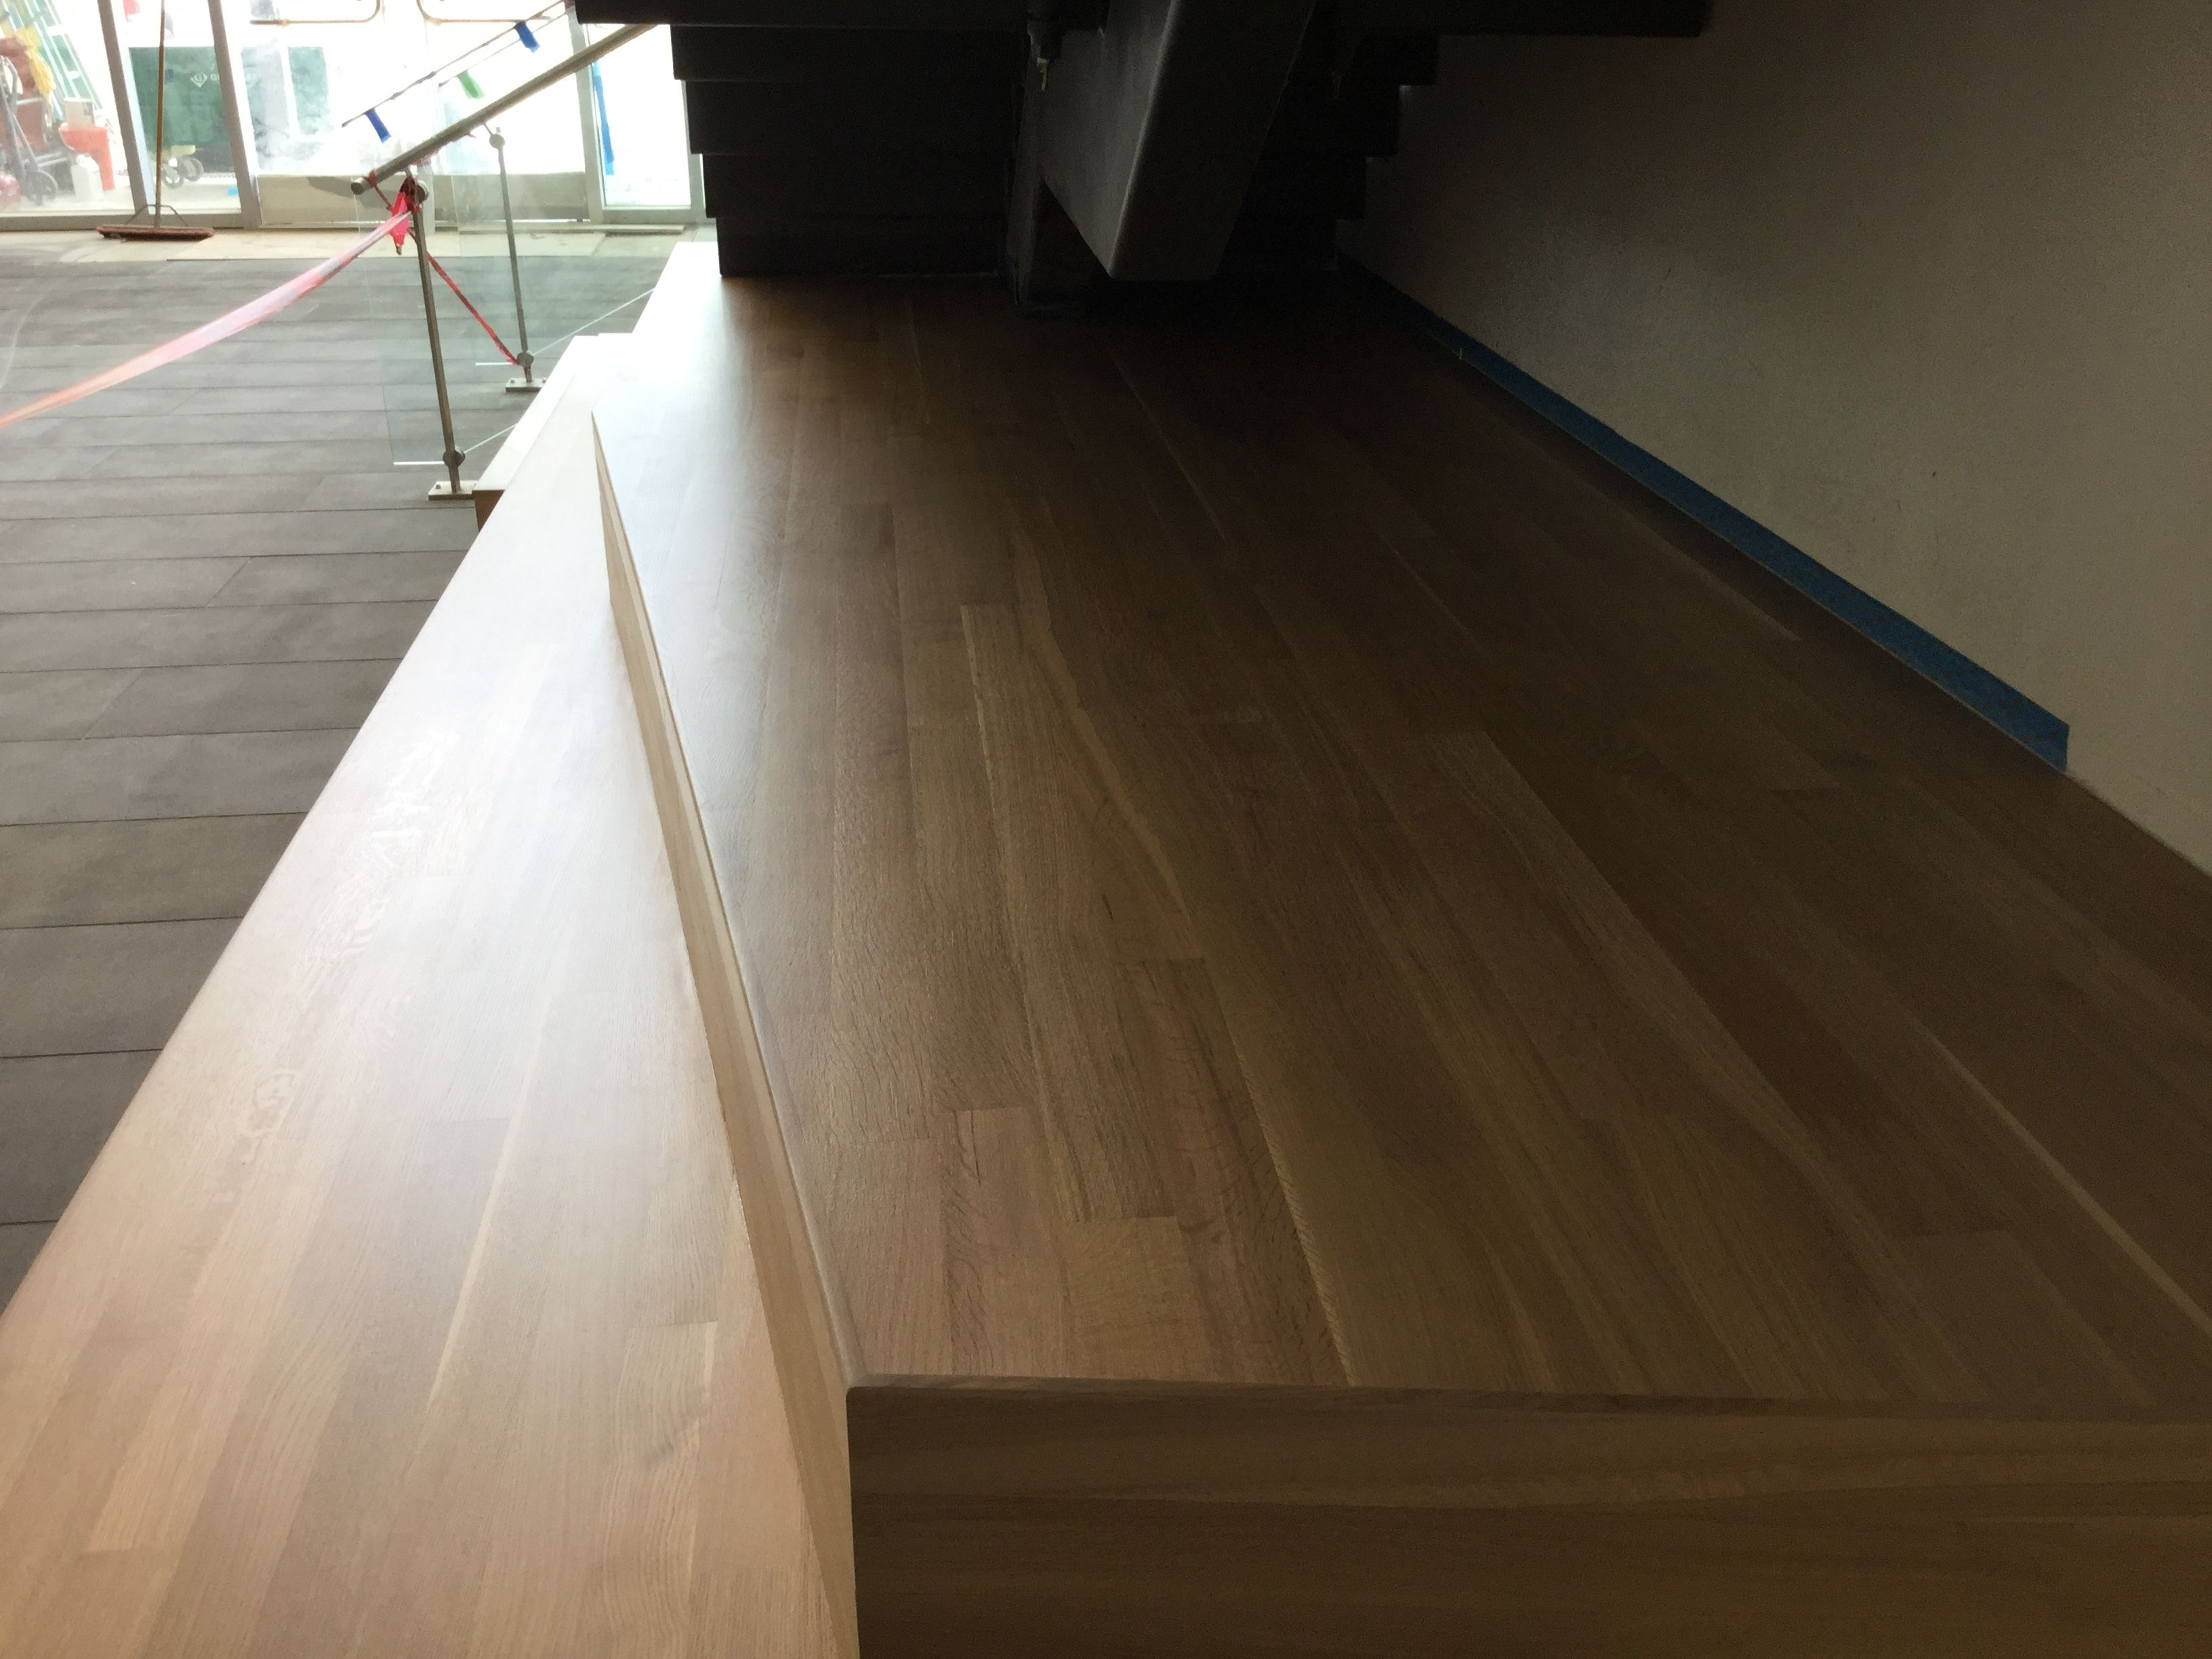 Stair Plinth With Seating Stair Treads Stairs Hardwood Floors   Hardwood Floor Stair Treads   Dark Oak   Hickory   Vinyl   Red Oak   Pergo Floor